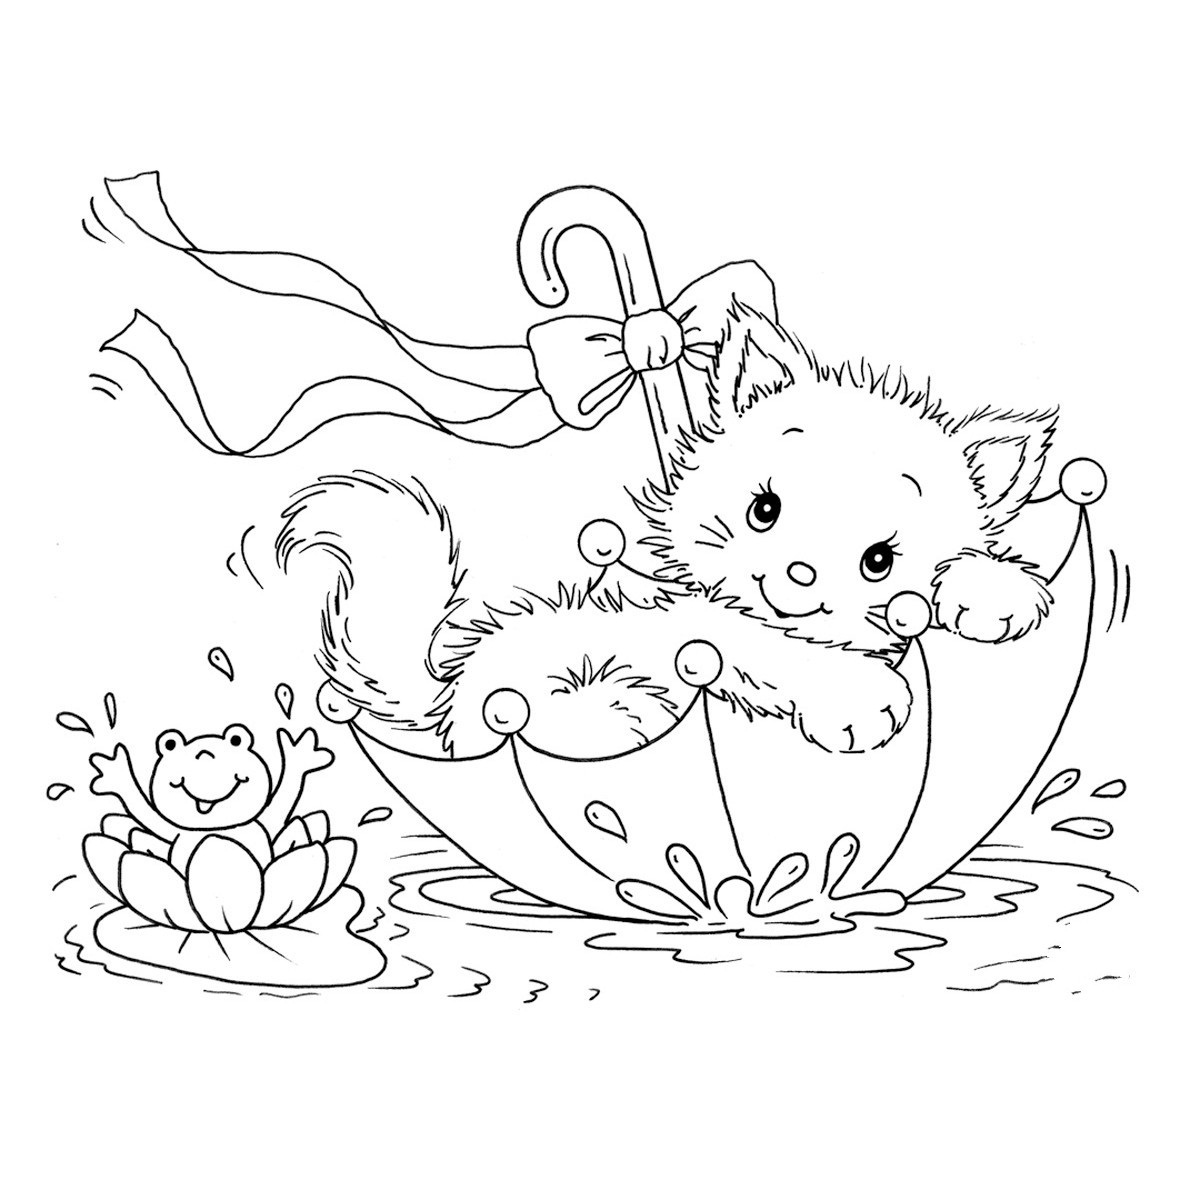 kitty coloring free 18 hello kitty coloring pages in pdf ai kitty coloring